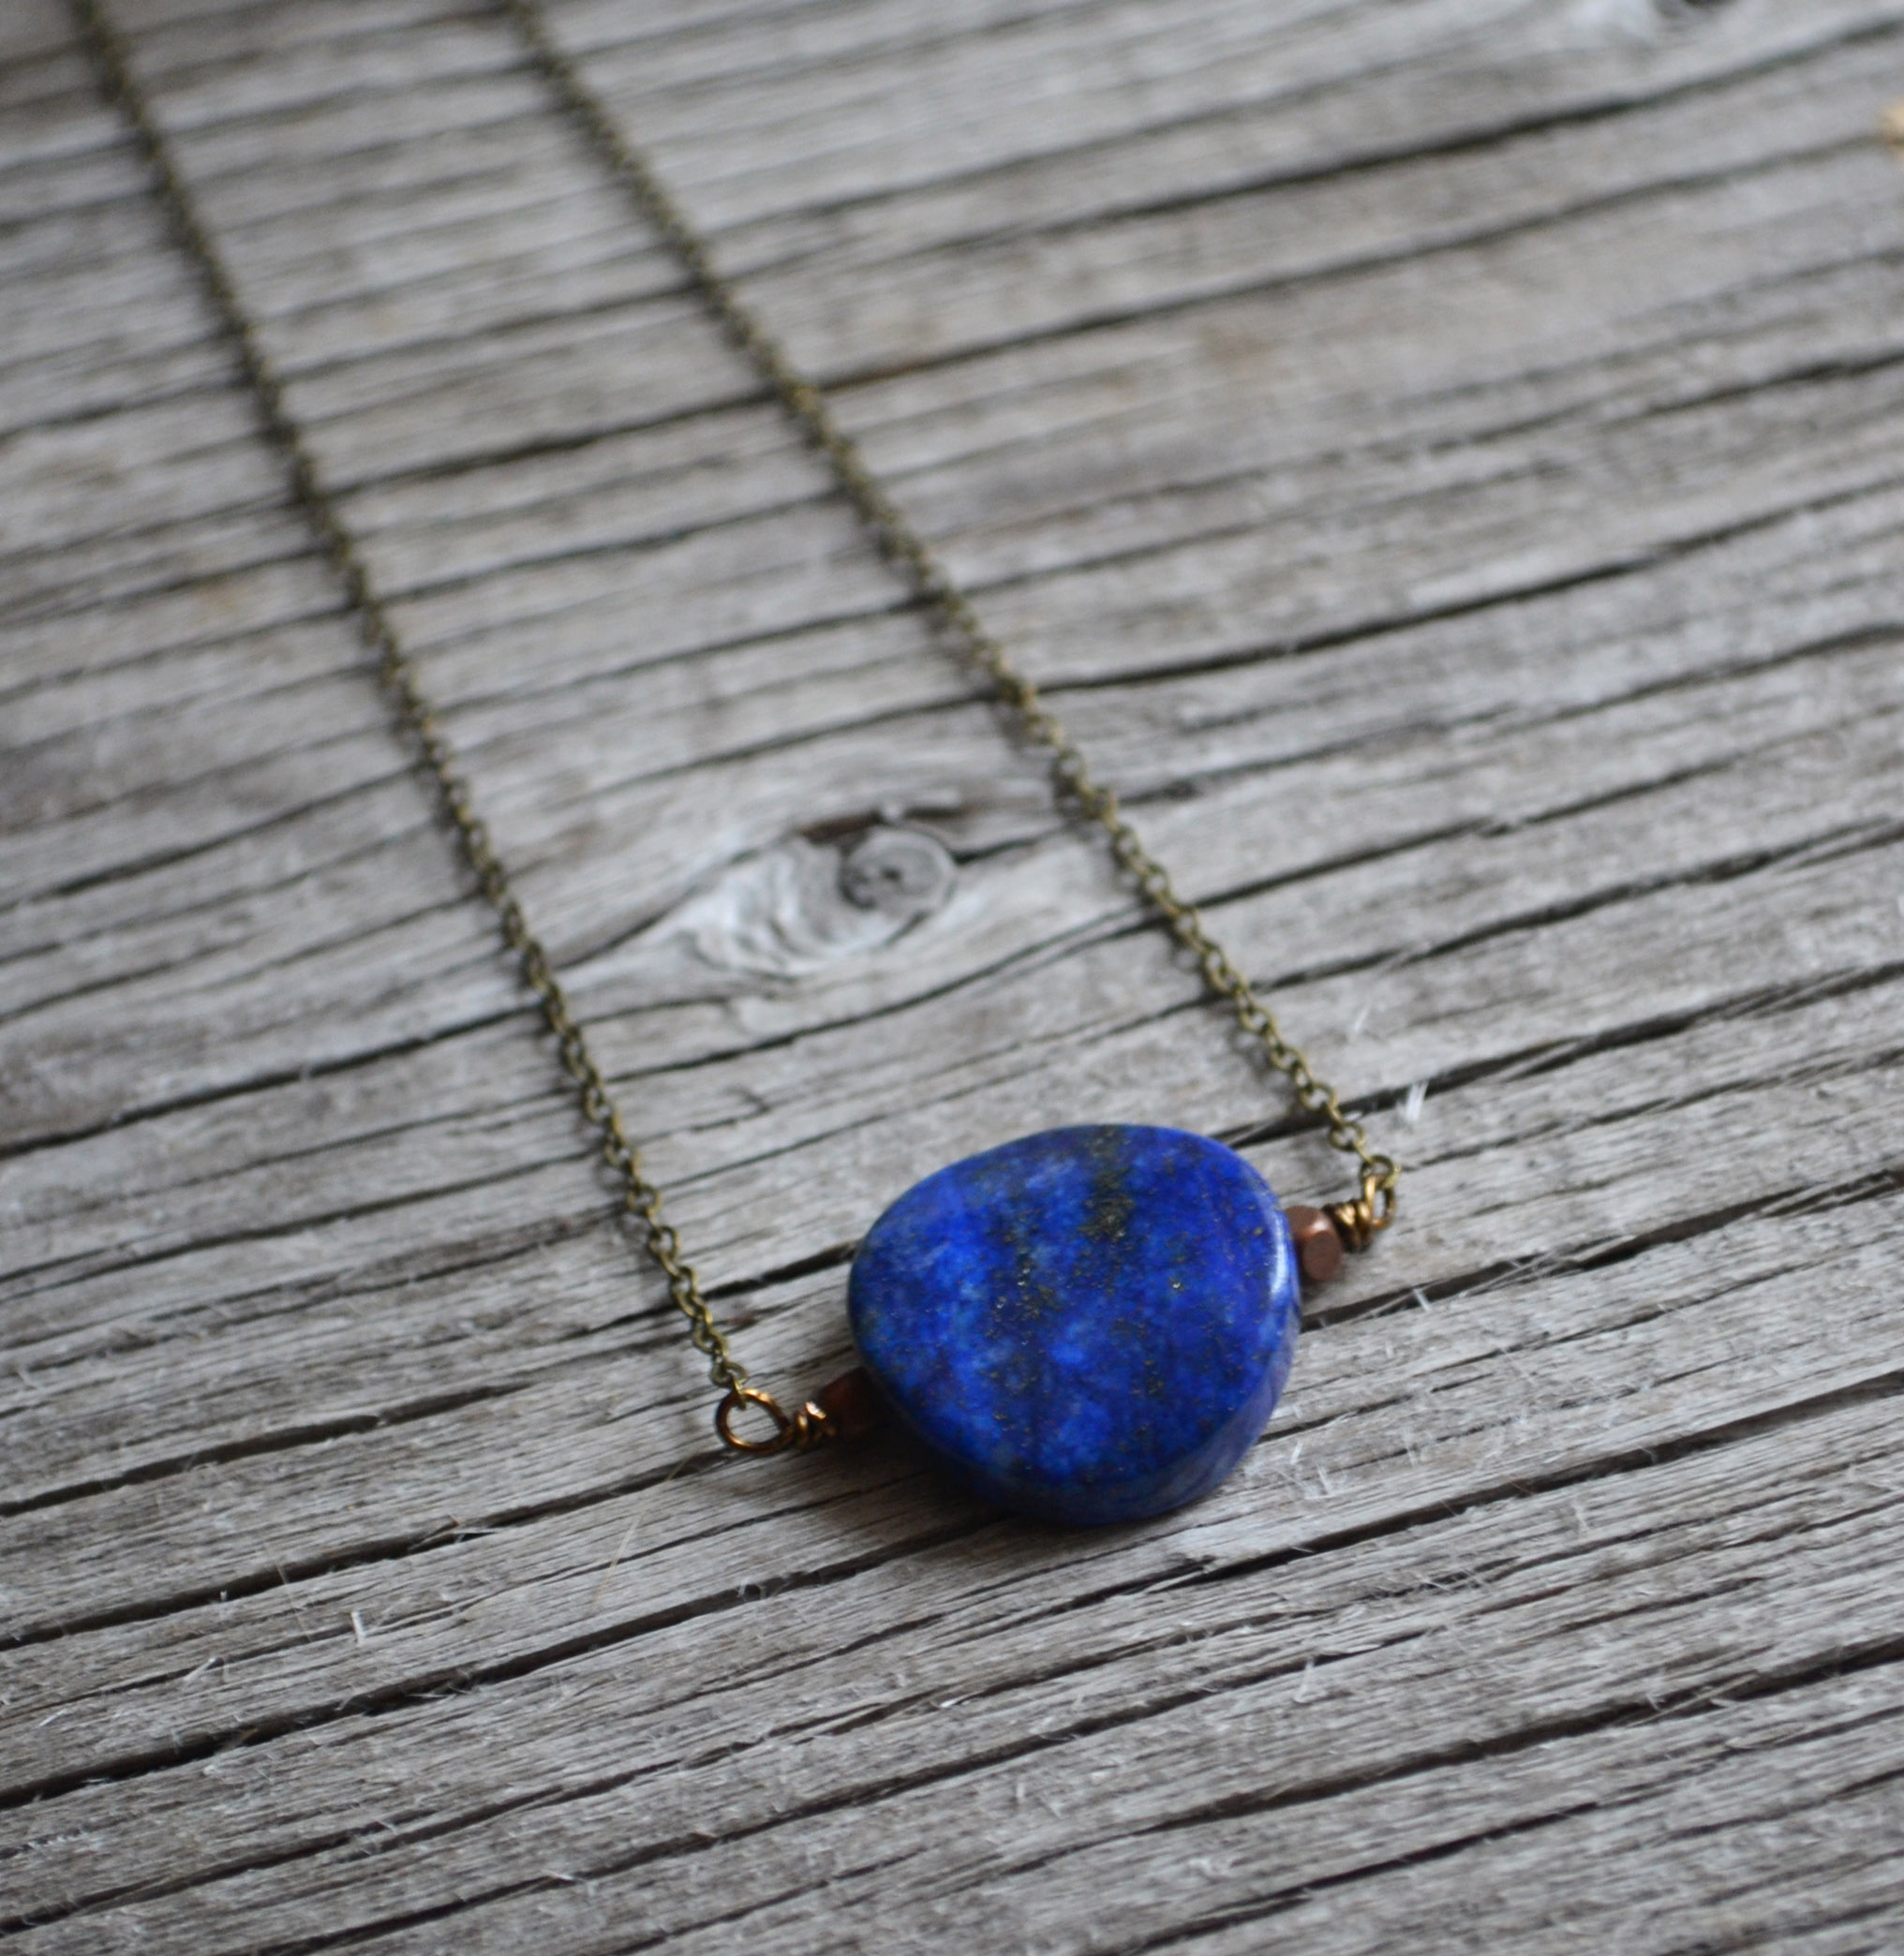 wire sterling silver wrapped lapis lazuli necklace pin pendant